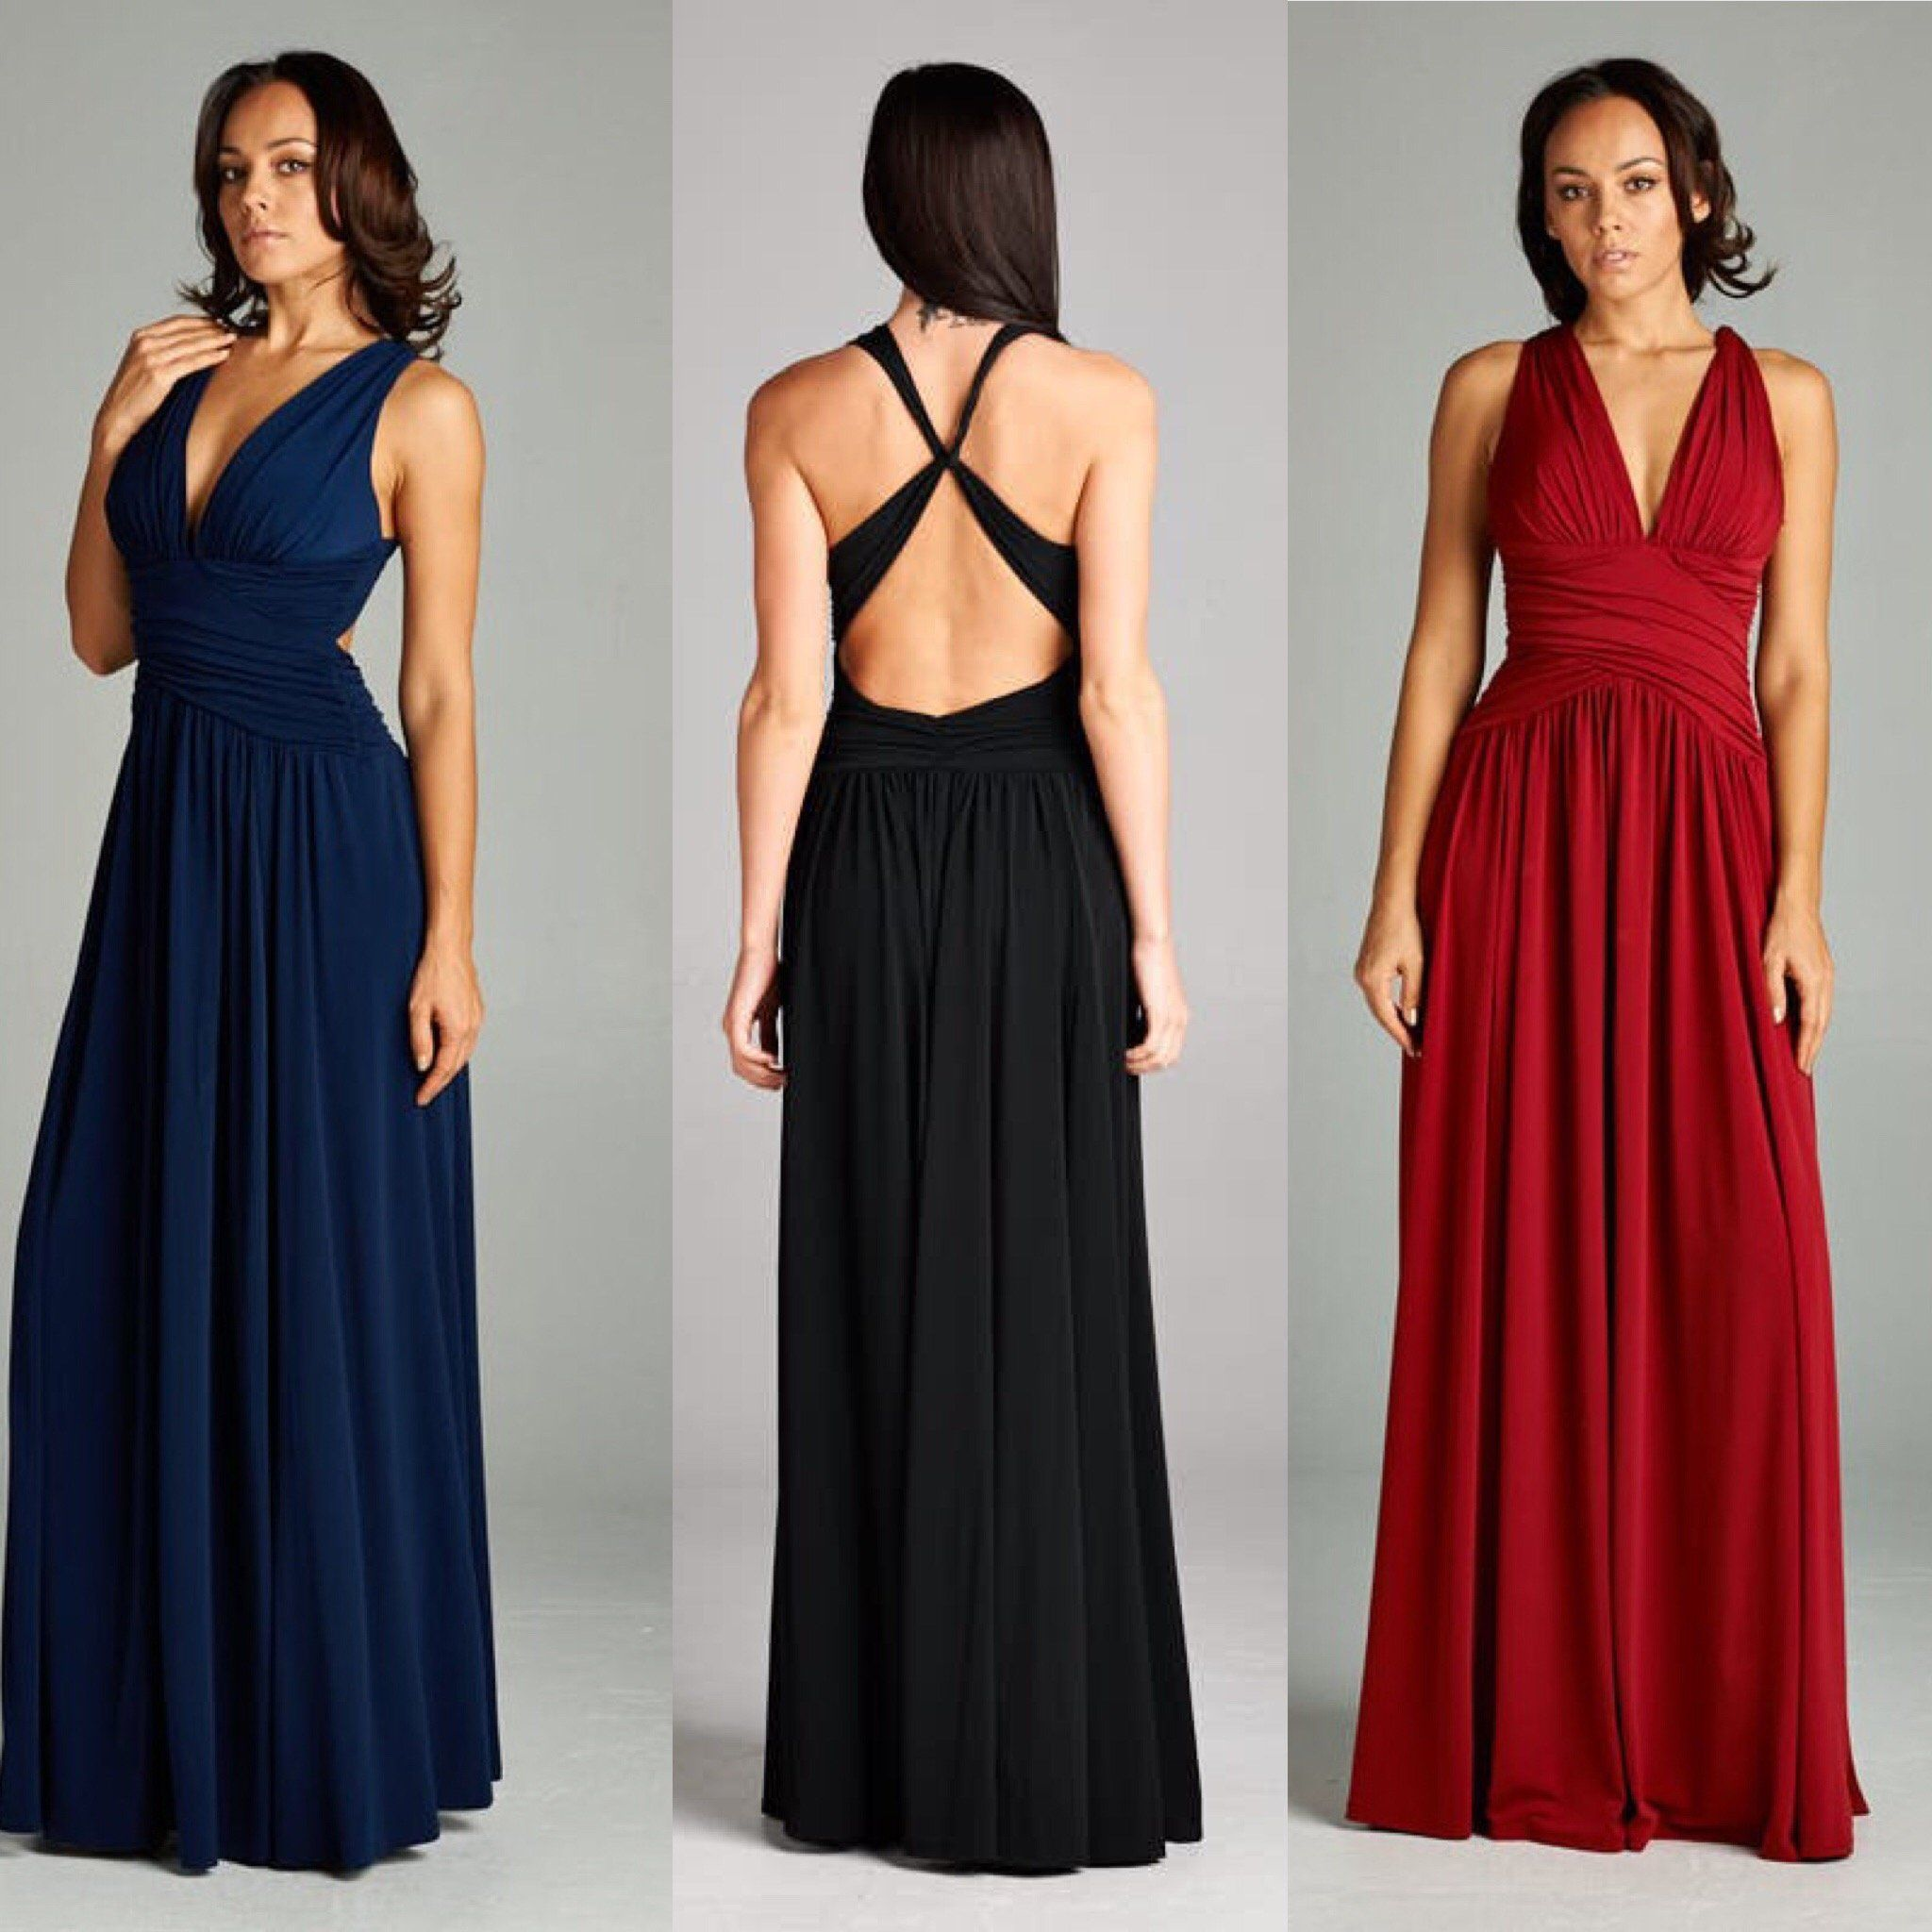 e5e89e5f886 Head turner V Neck gown with criss cross back. Ruched bodice with soft  gathers around the waist with extra fullness. Side slit above the knee adds  to the ...